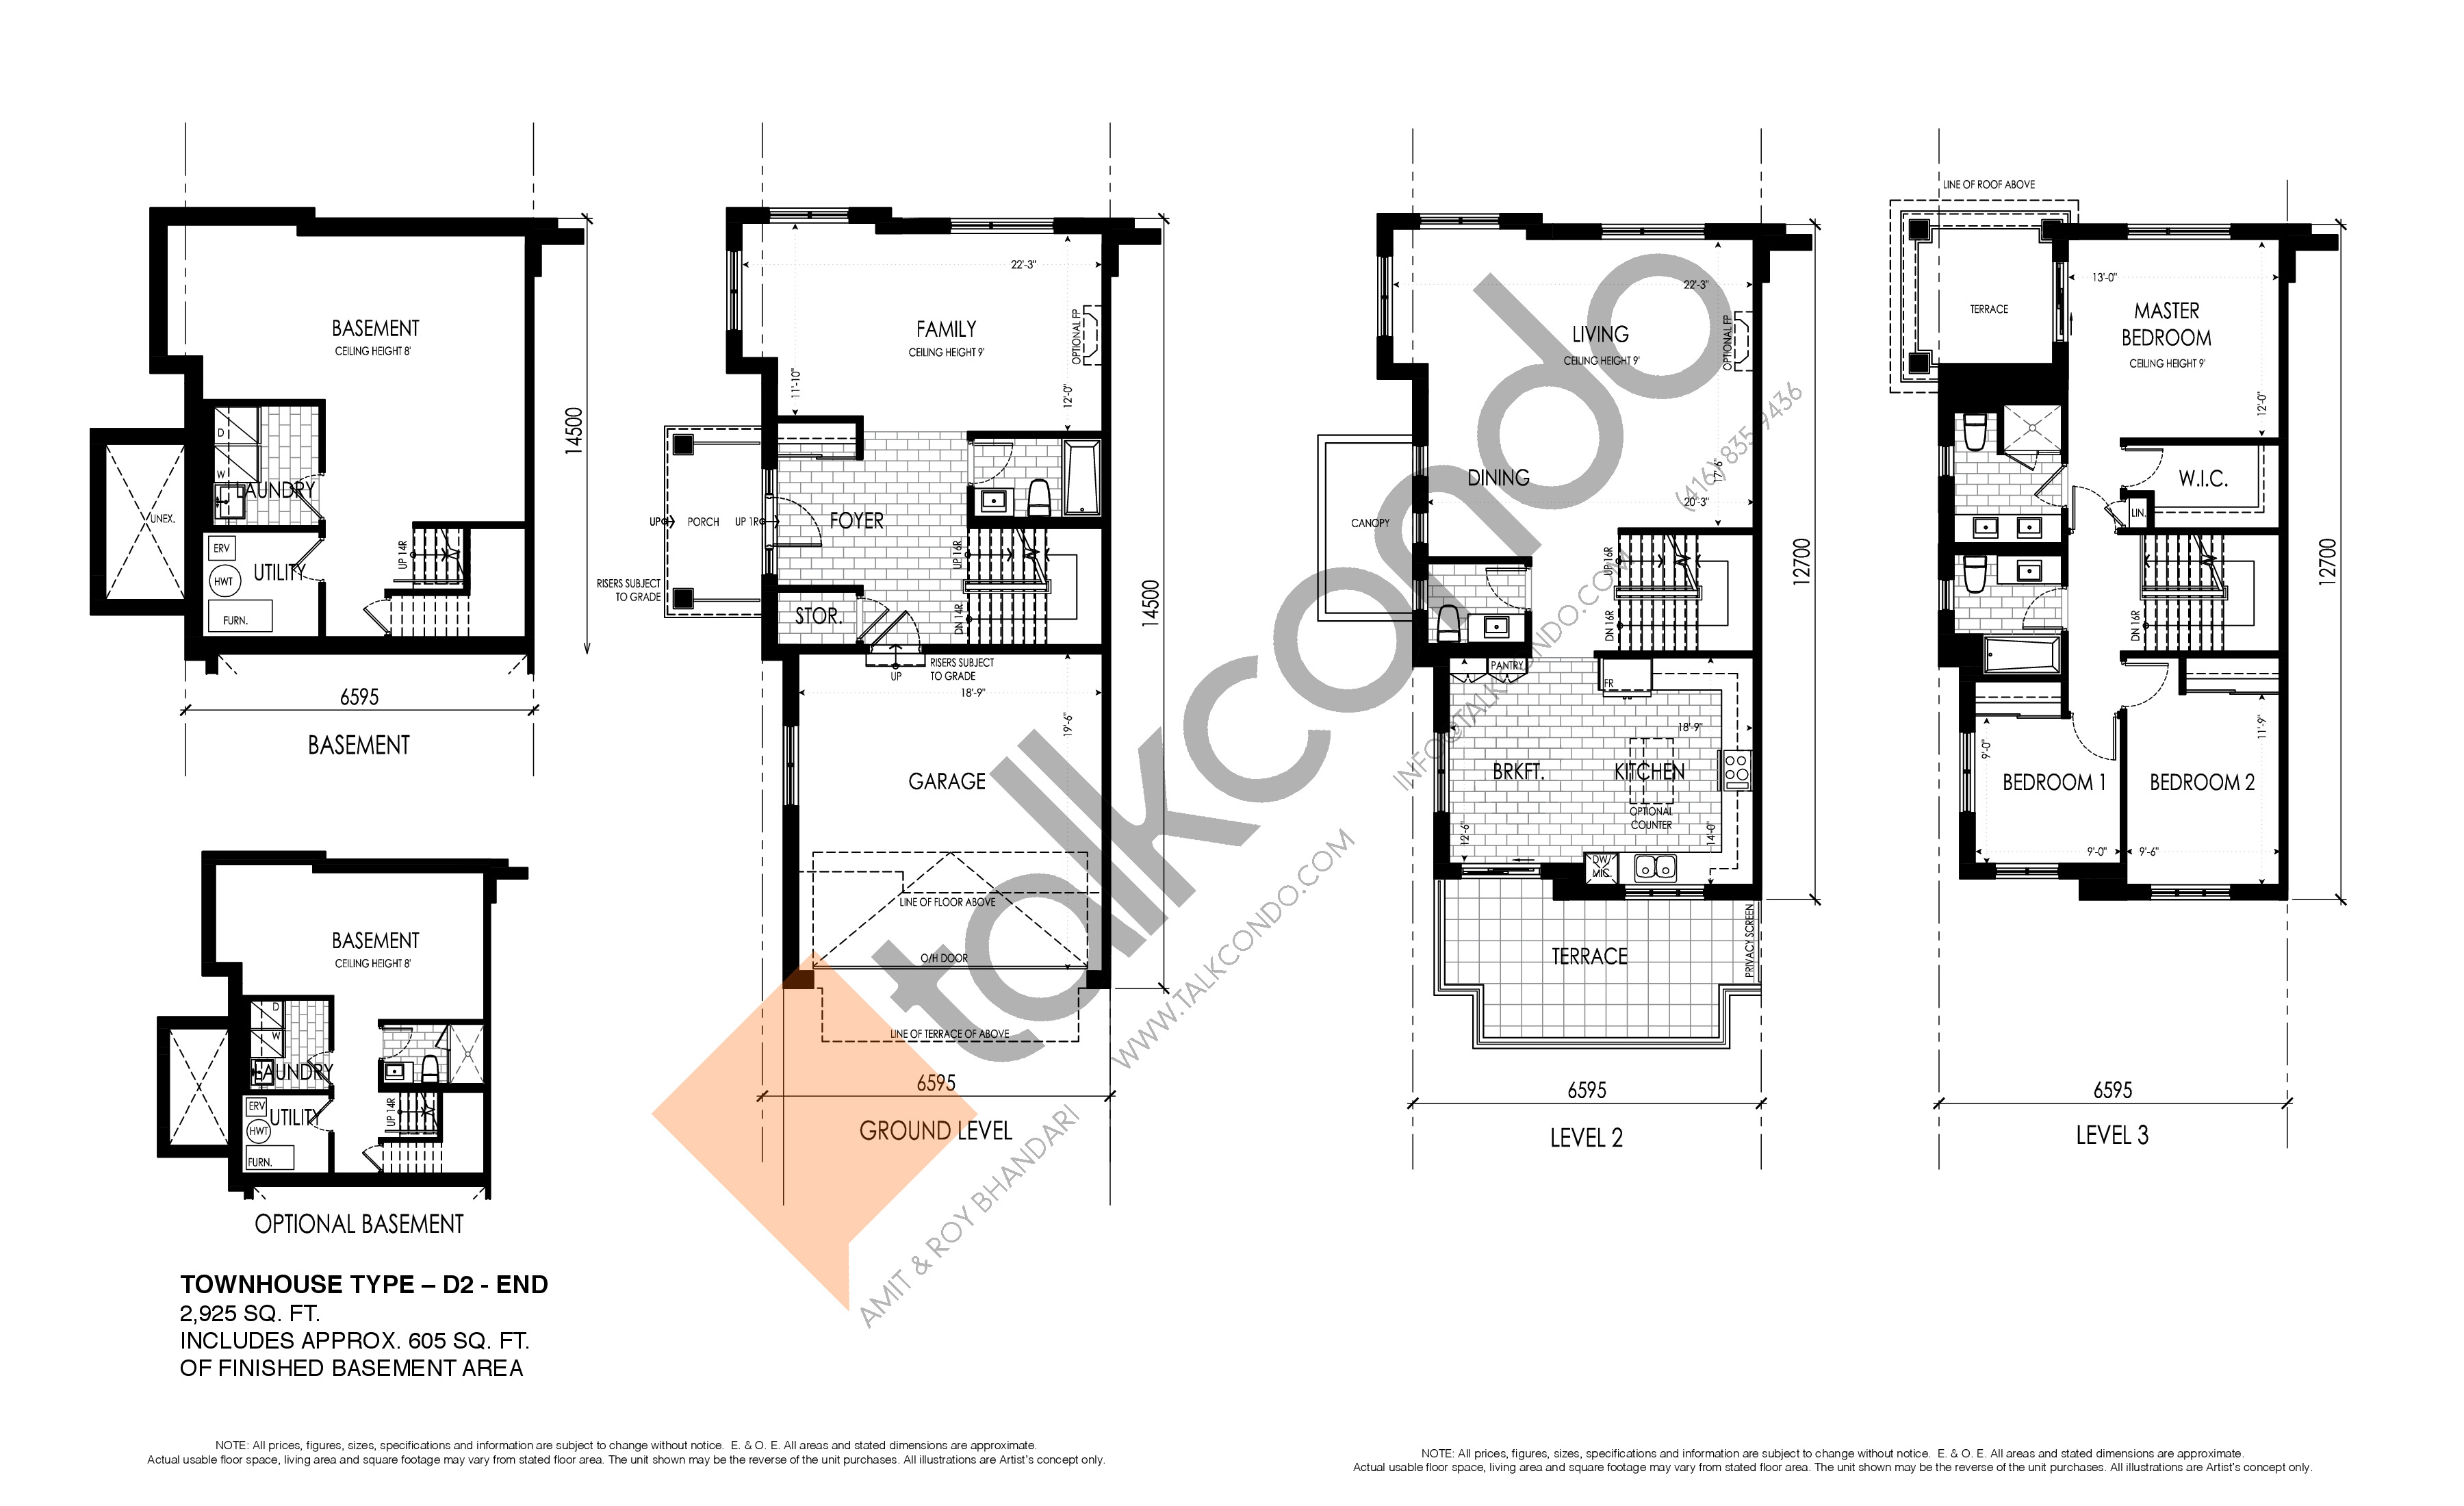 D2 - End Floor Plan at Pavilia Park Towns - 2925 sq.ft